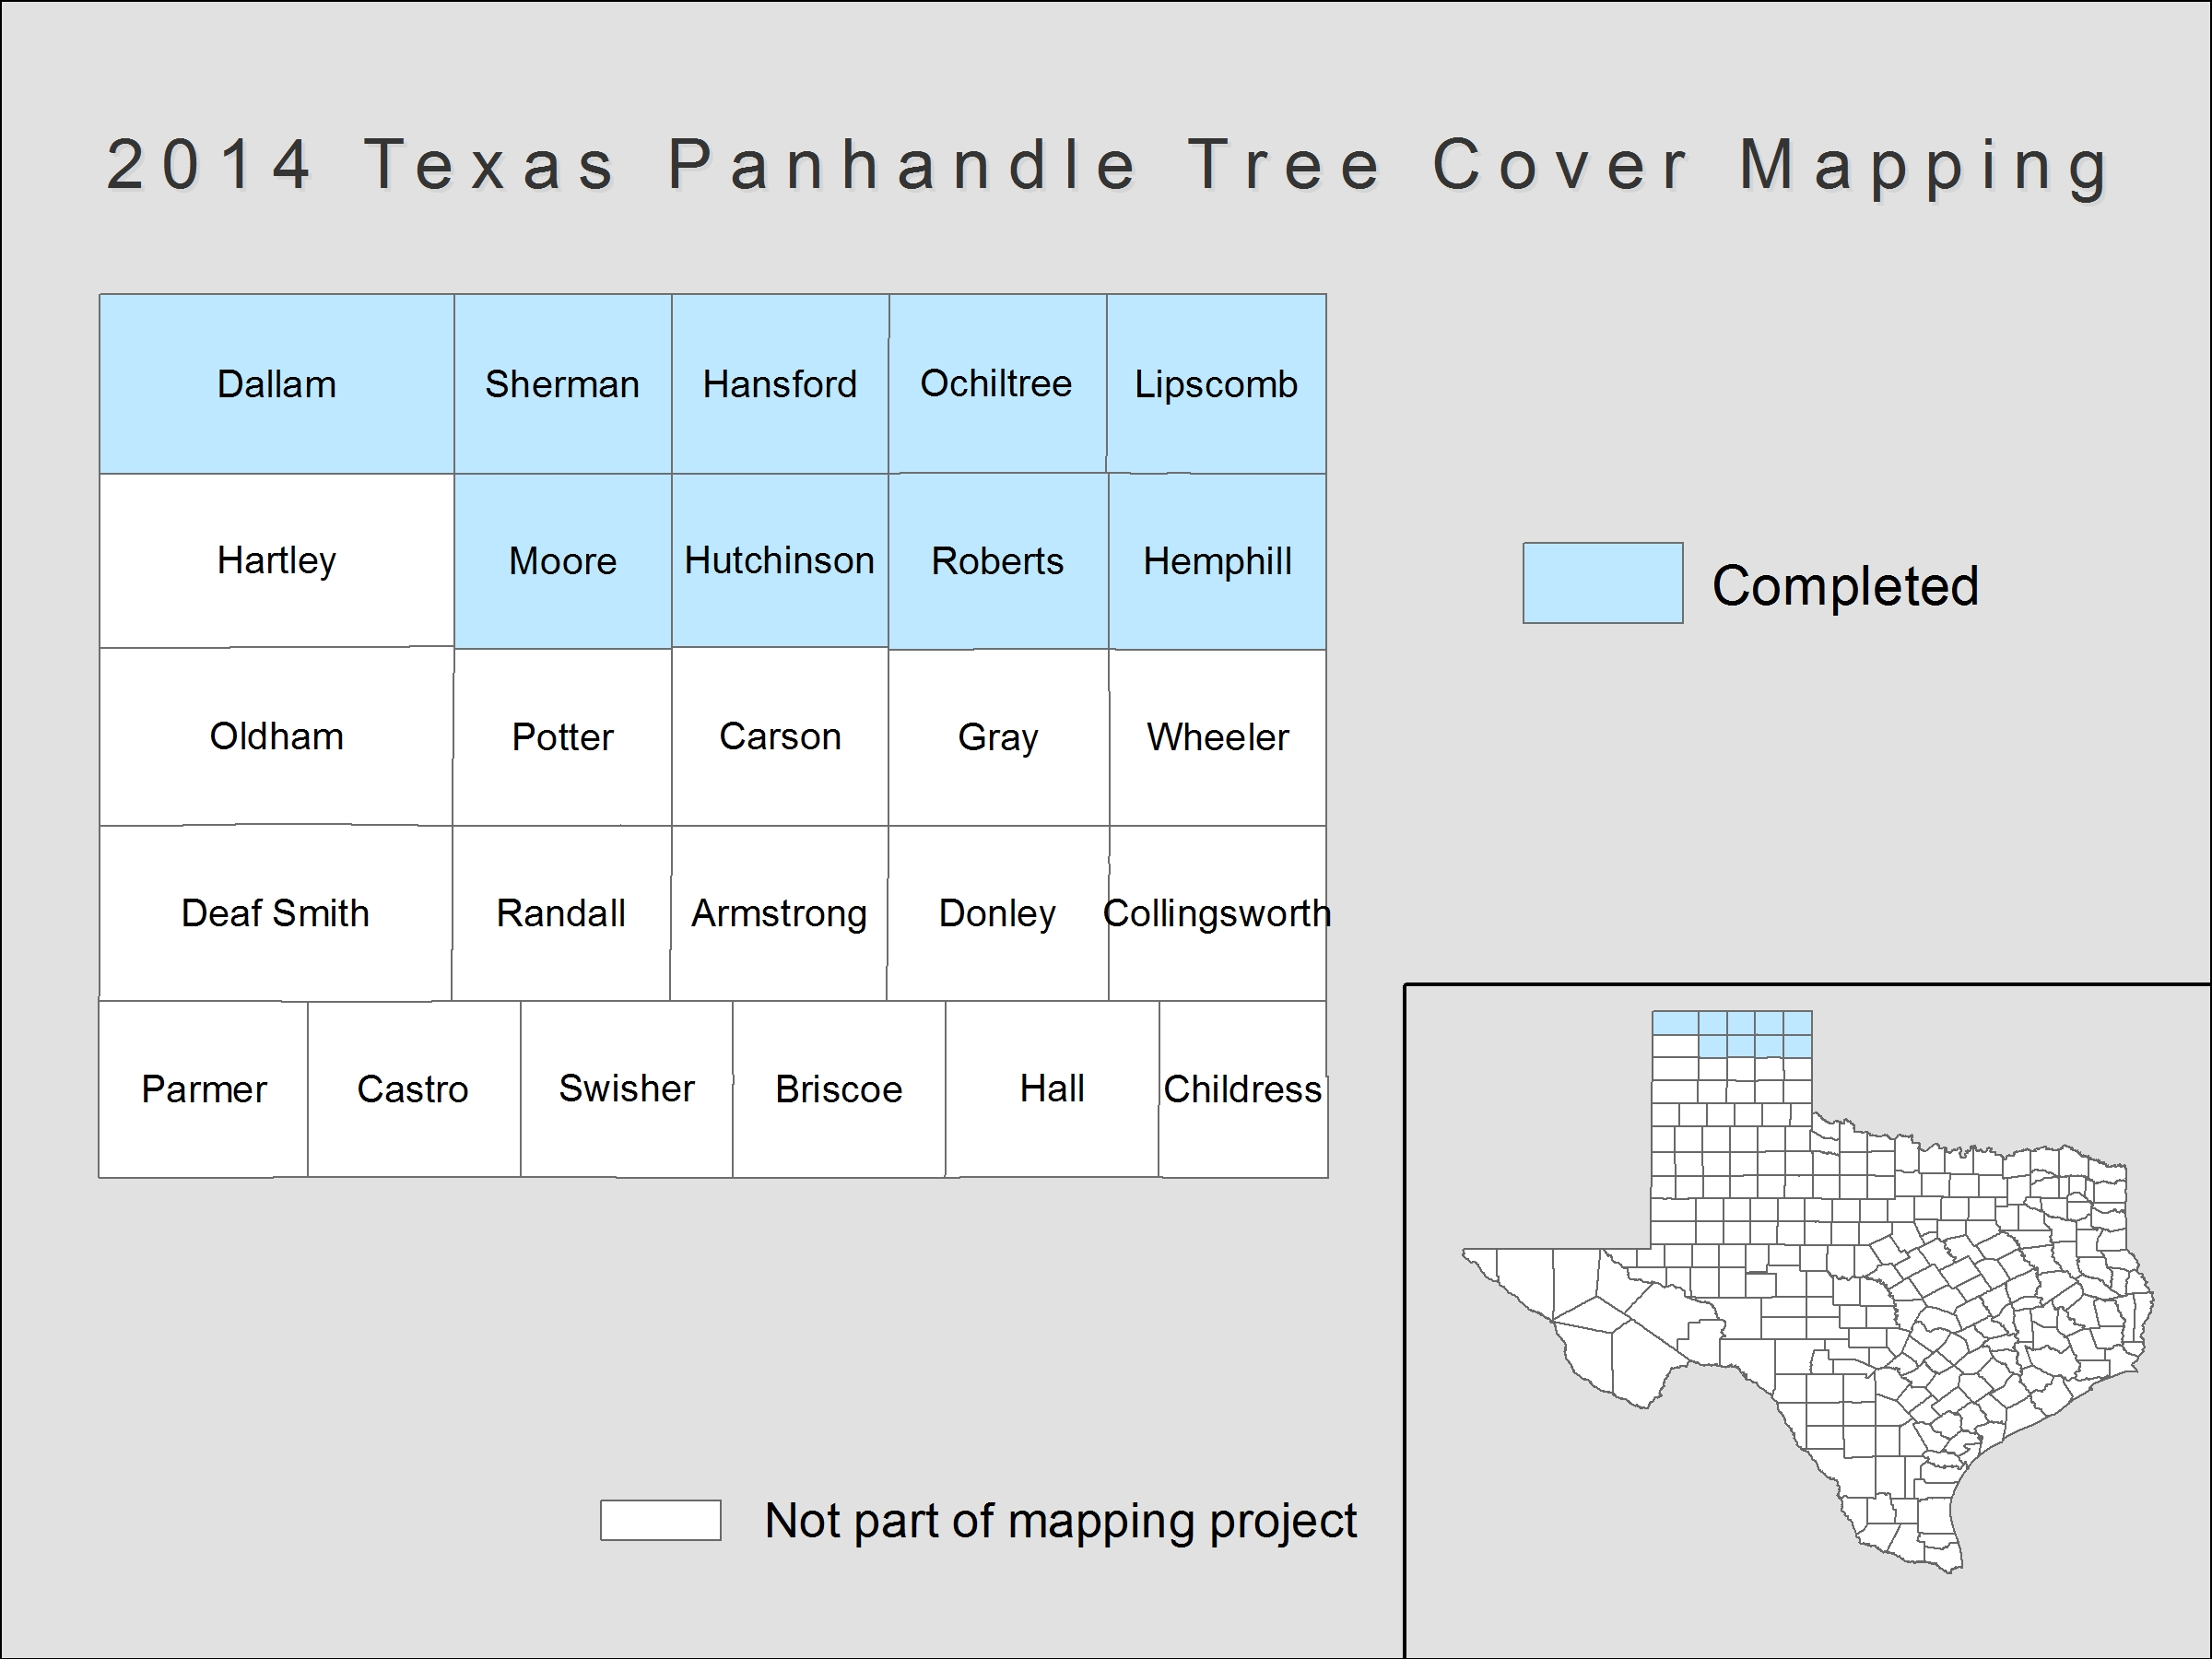 [image:] Status map of tree cover mapping in Texas.